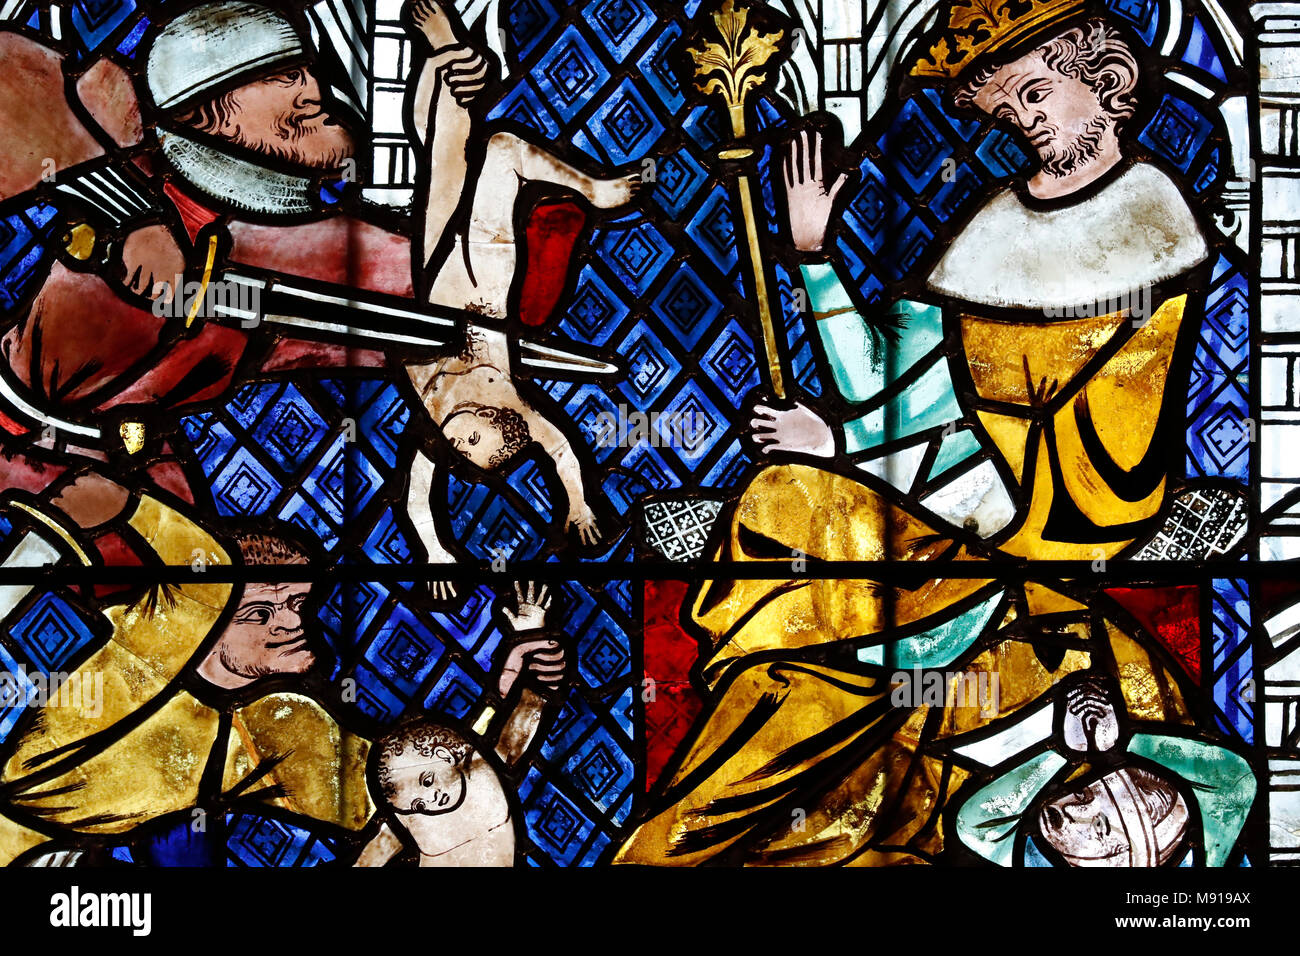 Our Lady of Strasbourg Cathedral. Stained glass window.  The Massacre of the Innocents. 14 th century.  Strasbourg. France. Stock Photo